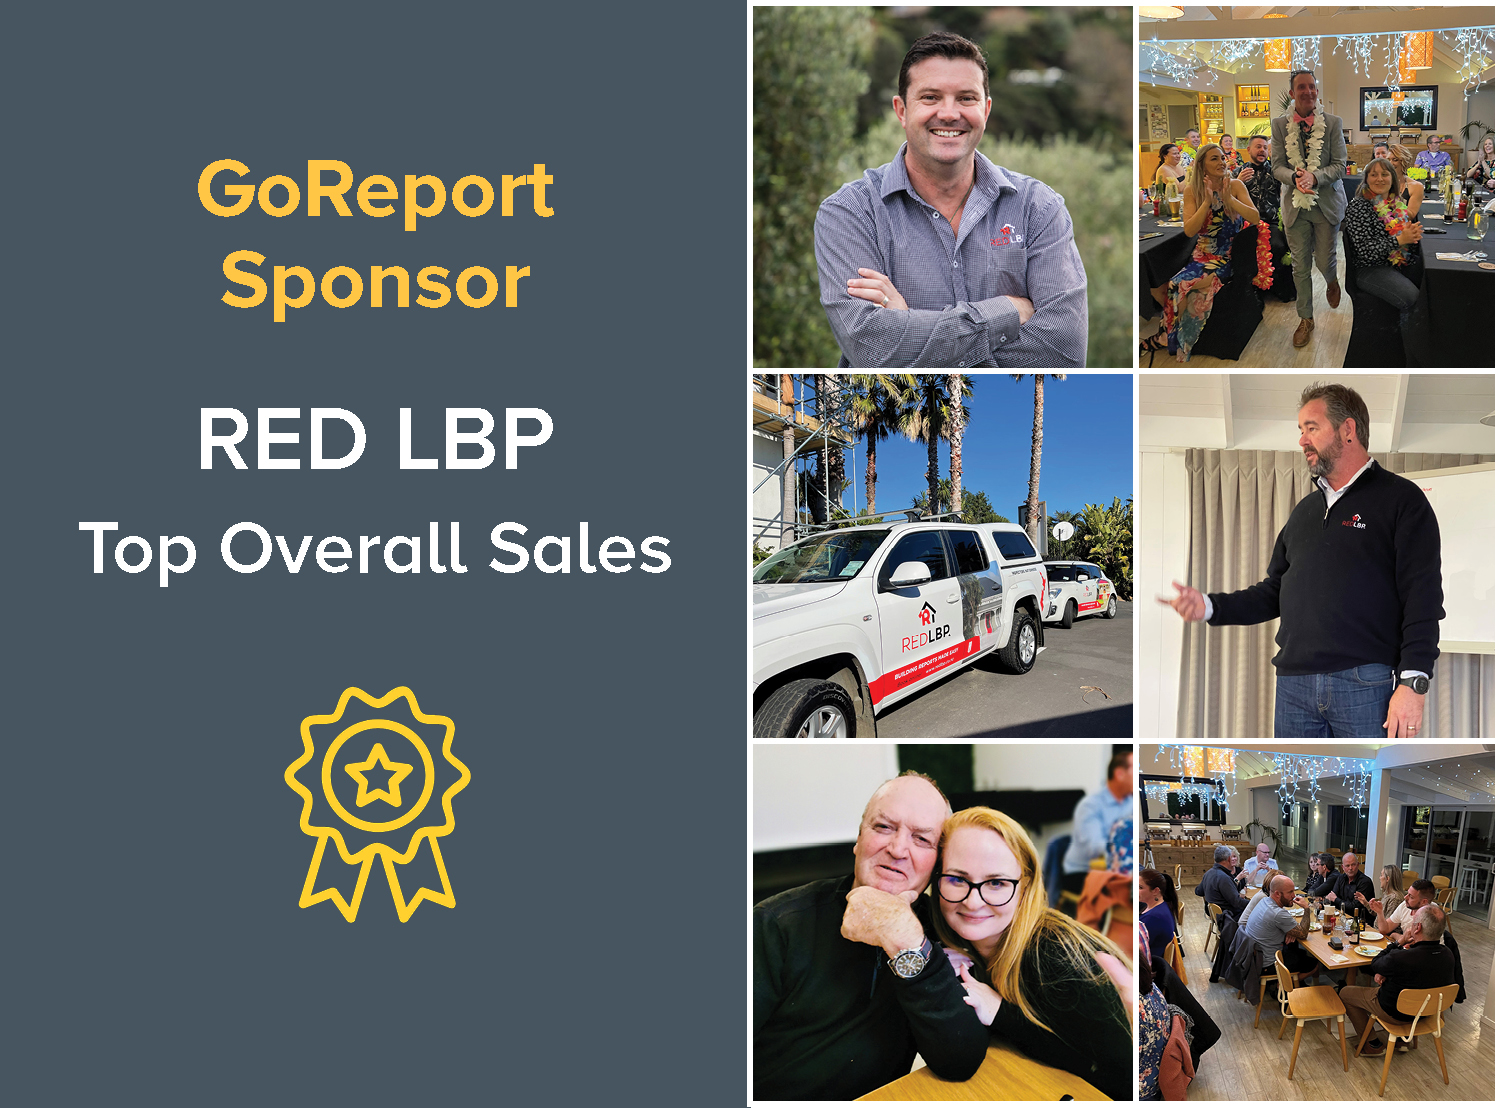 GoReport Sponsor Red LBP award at their annual conference in Waiheke Island, New Zealand